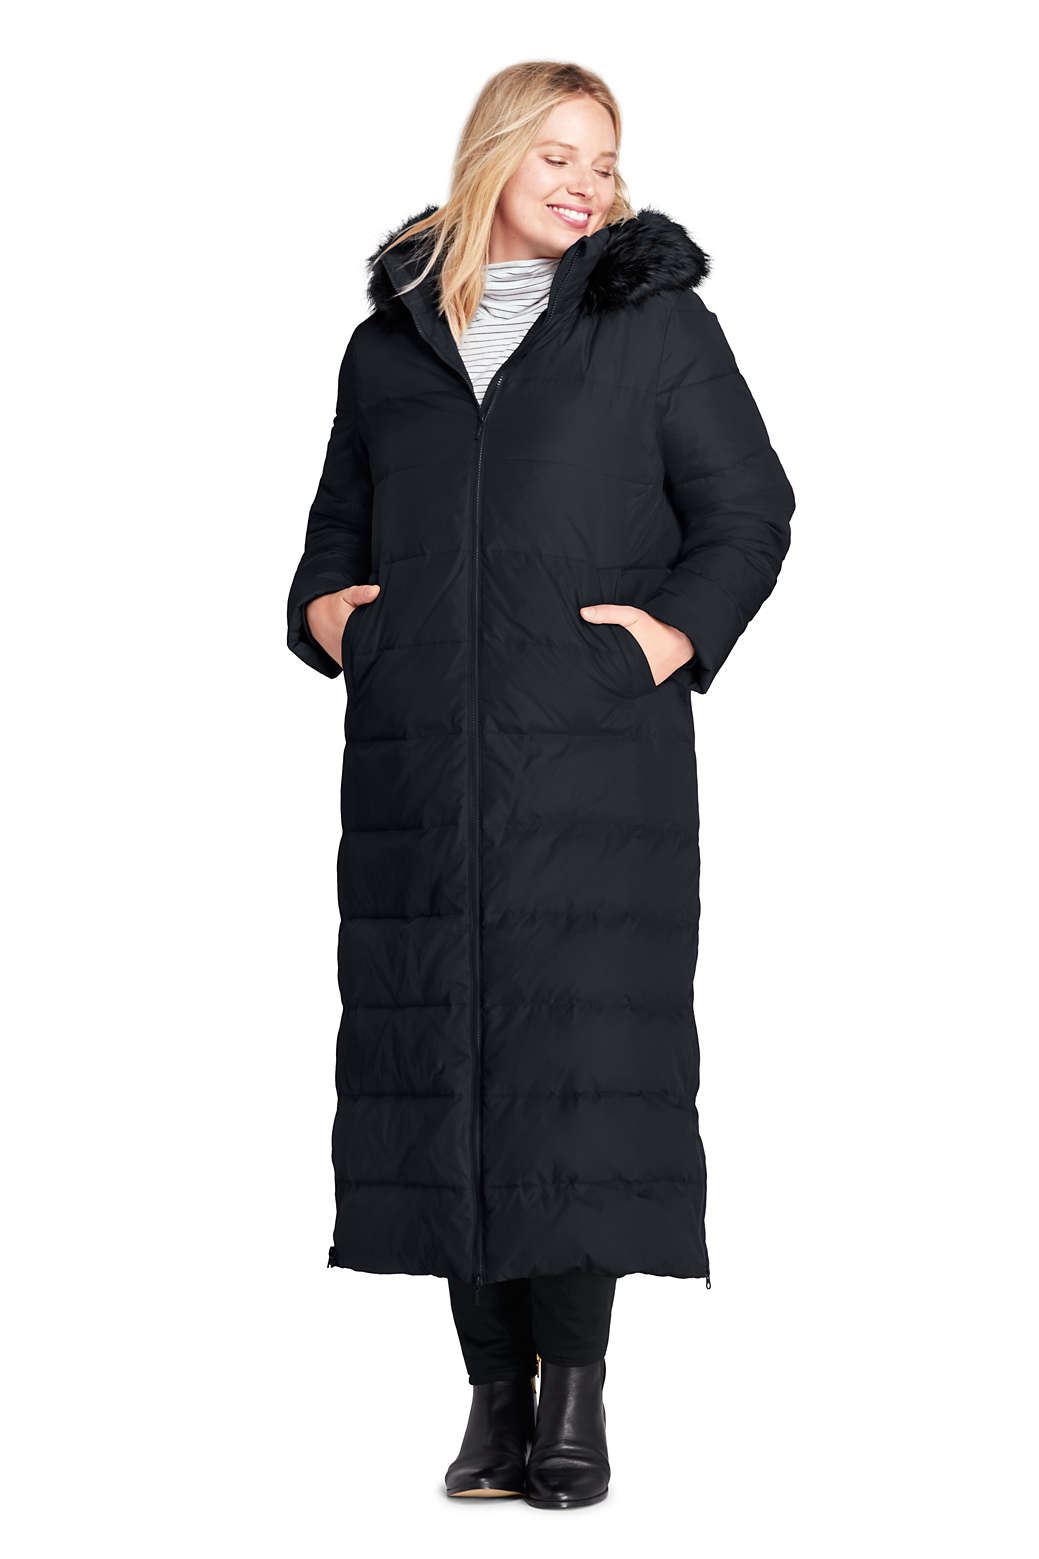 9ffcda37bcb Women s Plus Size Winter Long Down Coat with Faux Fur Hood from Lands  End